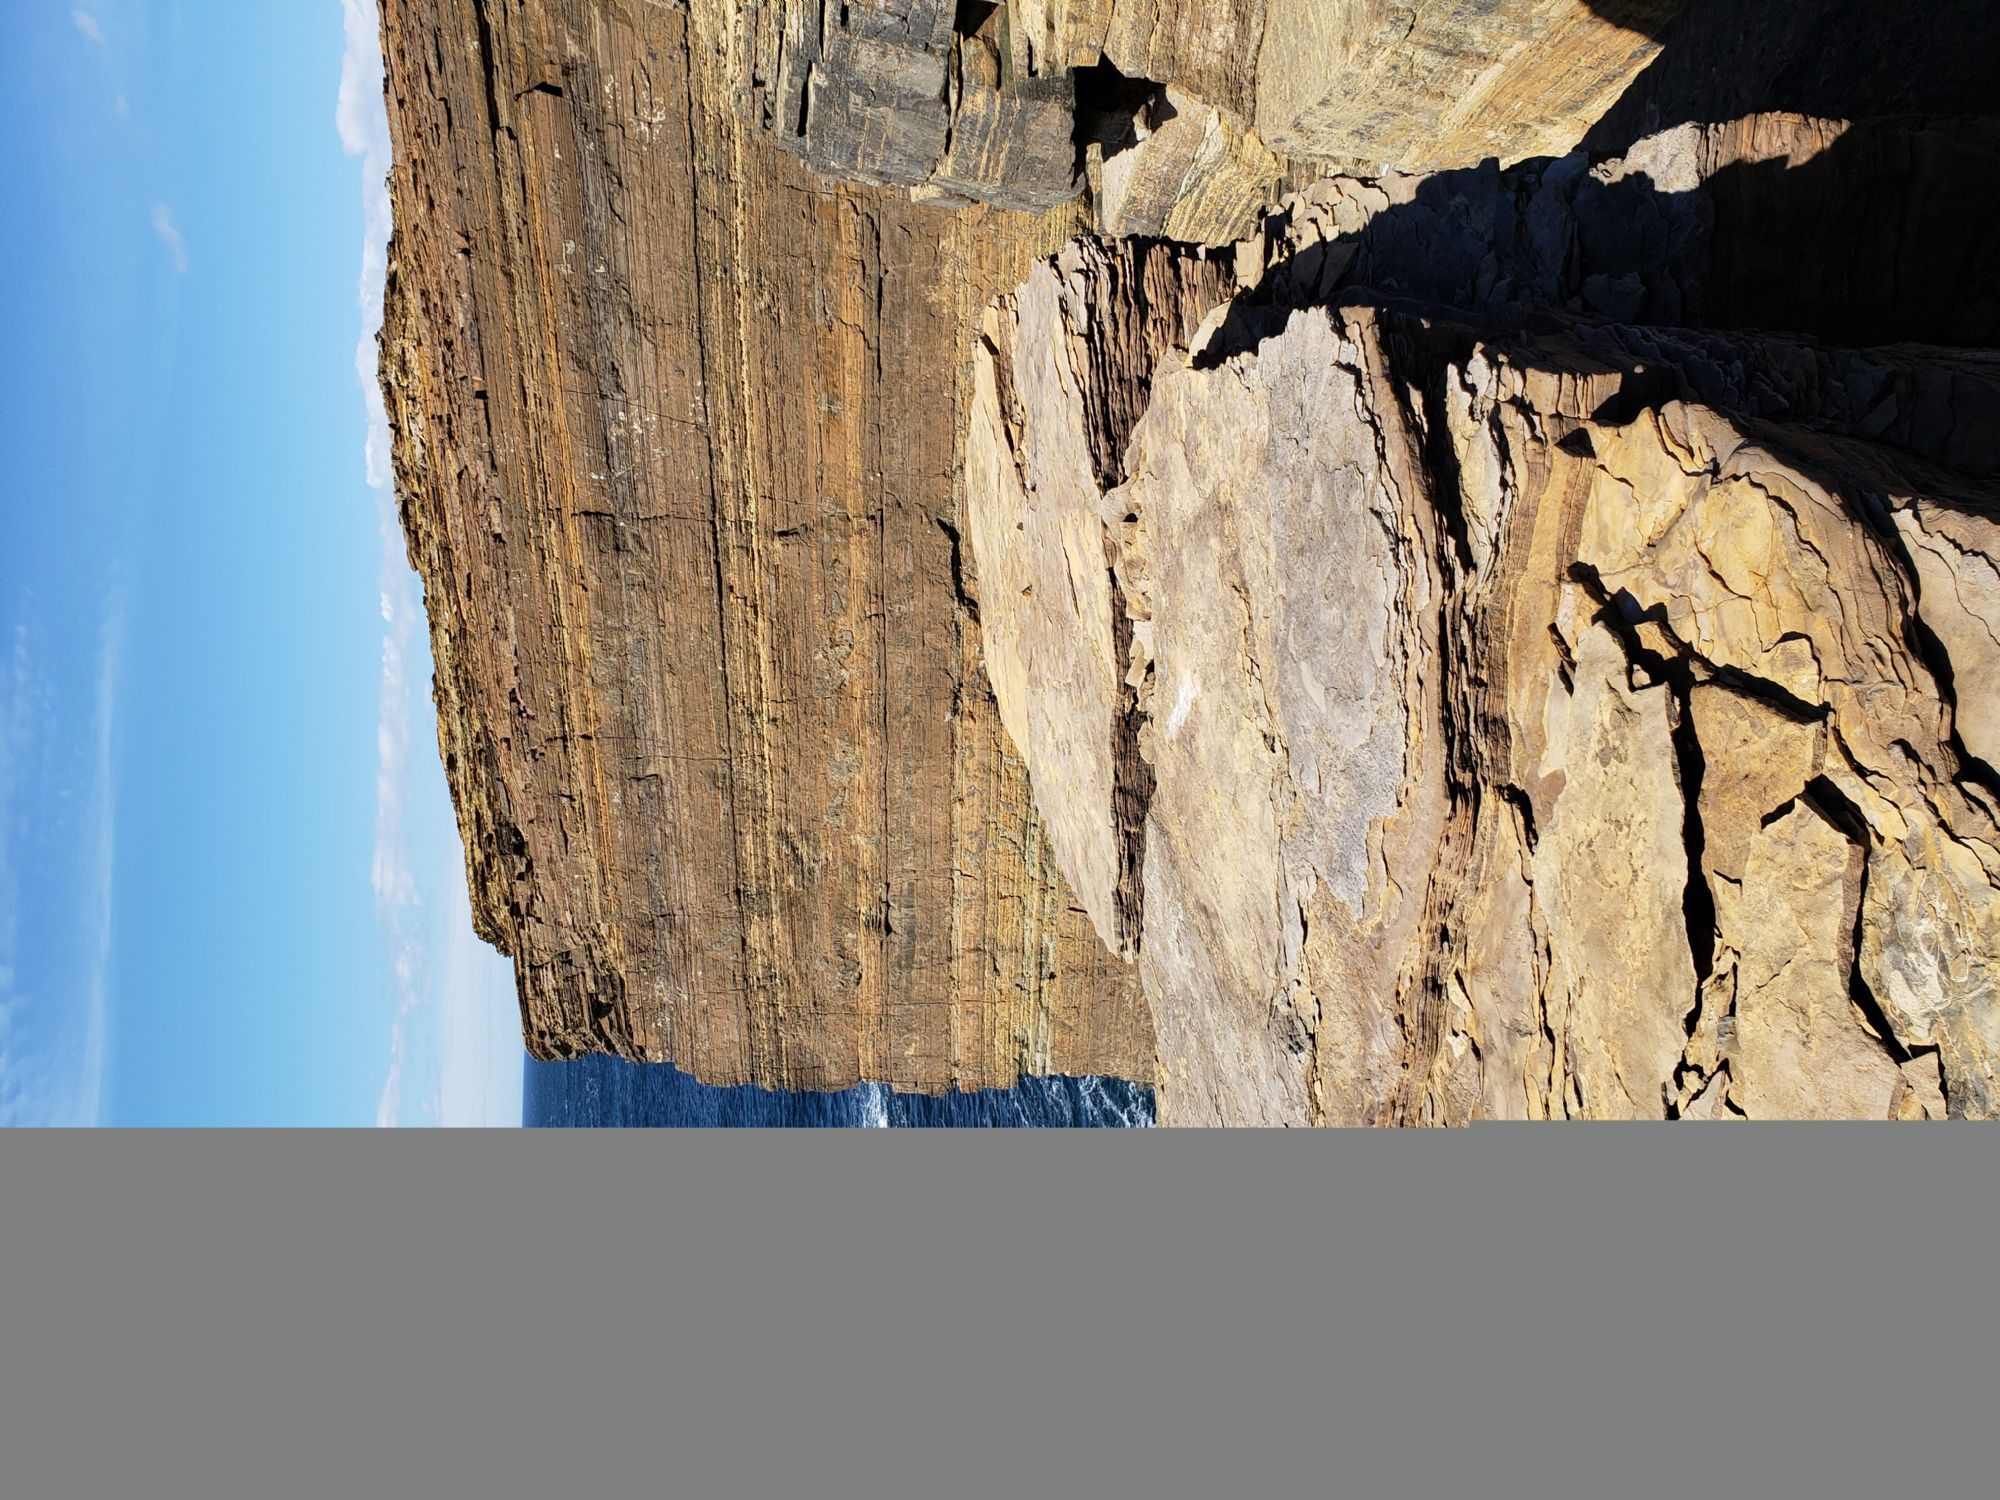 Cliffs at Yesnaby